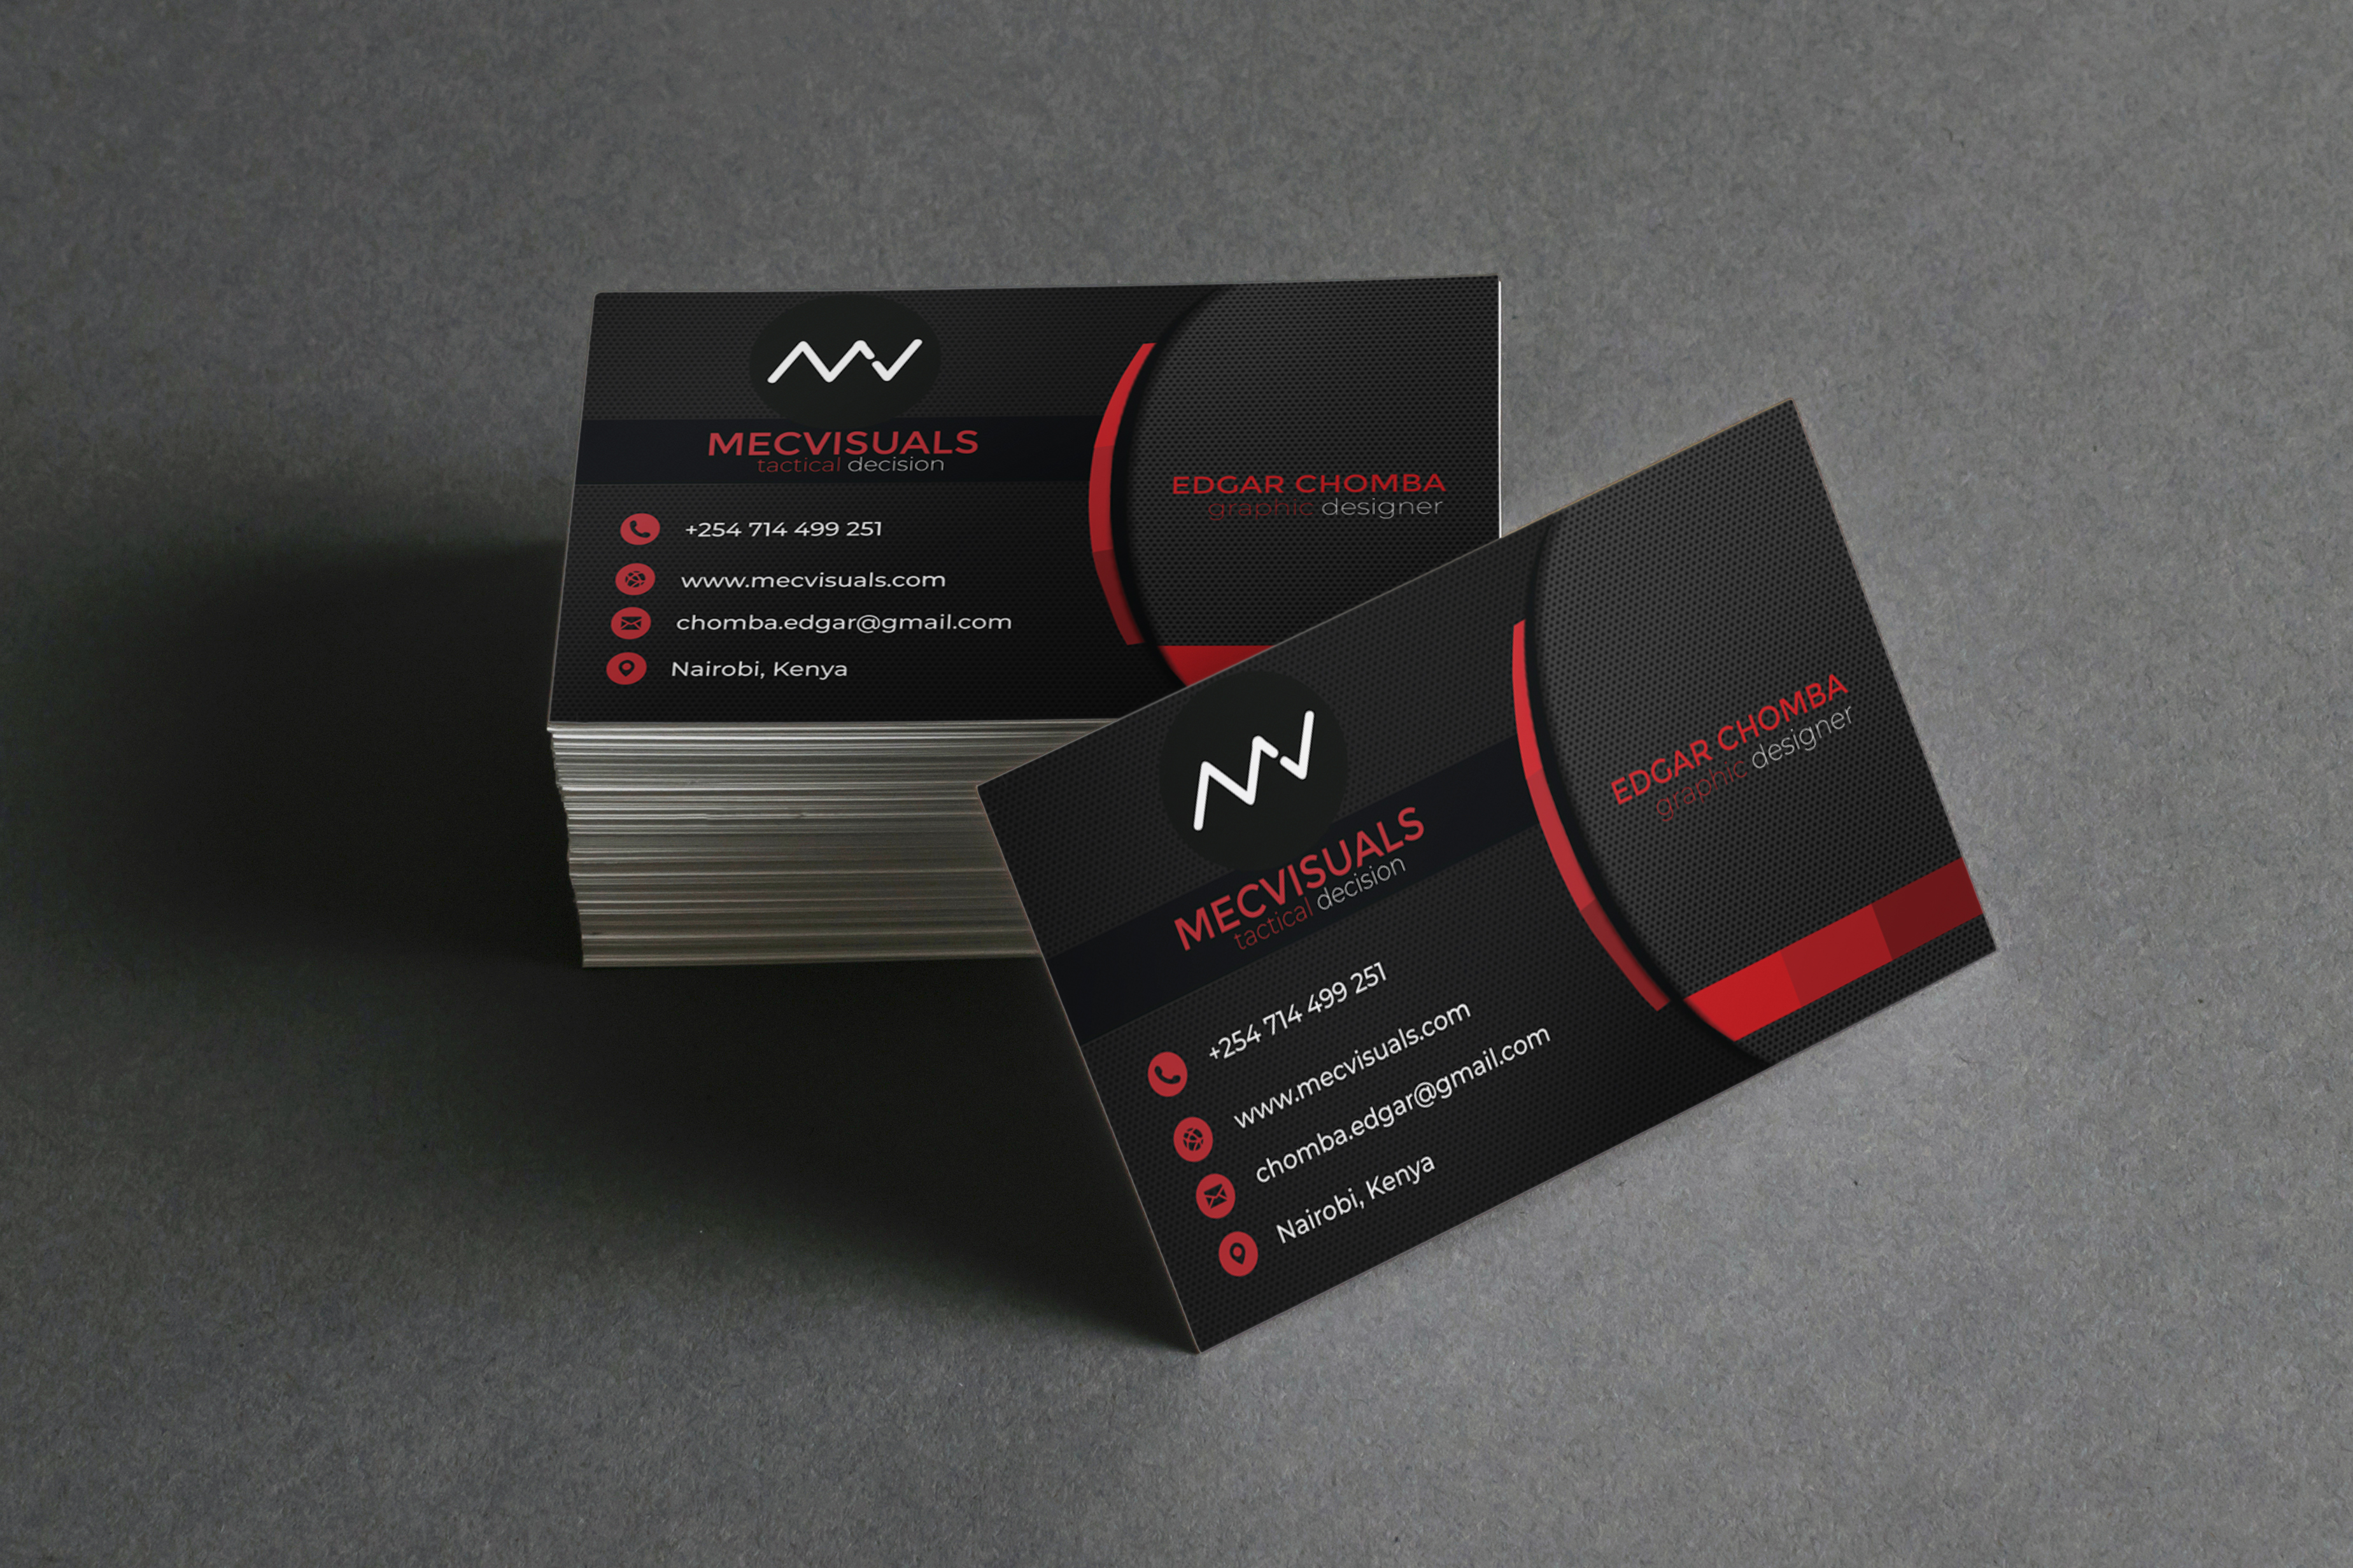 I will design unique minimalist business cards in 24 hours